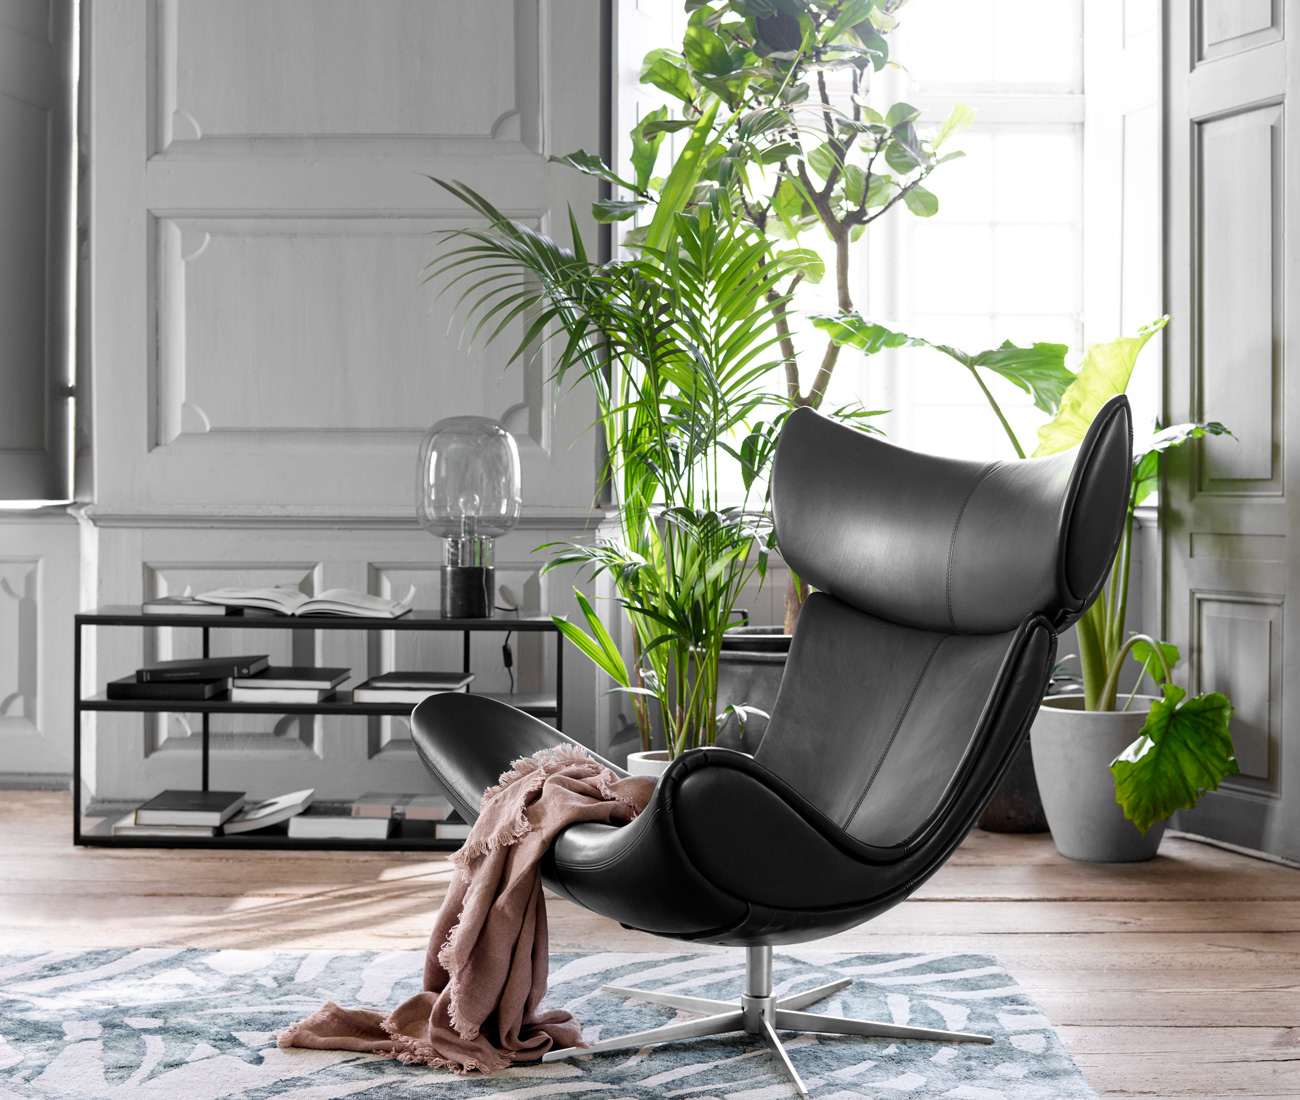 Black Imola chair in living room with plants in the background